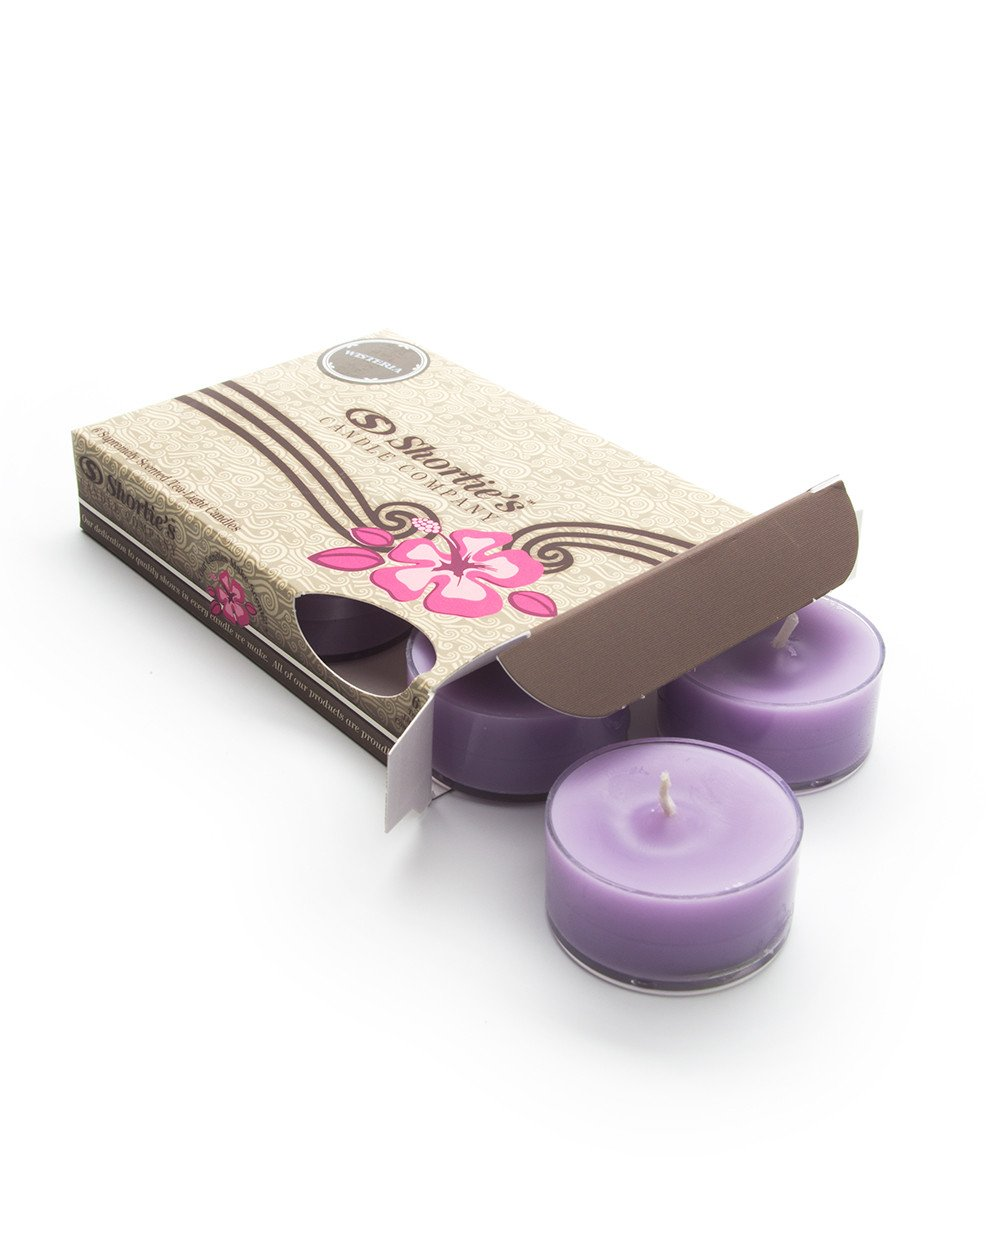 Pure Wisteria Tealight Candles Highly Scented - Made With Essential & Natural Oils - Purple Tea-Light Candles 6-Pack - Floral Tea Lights Collection Shortie's Candle Company AX-AY-ABHI-18333